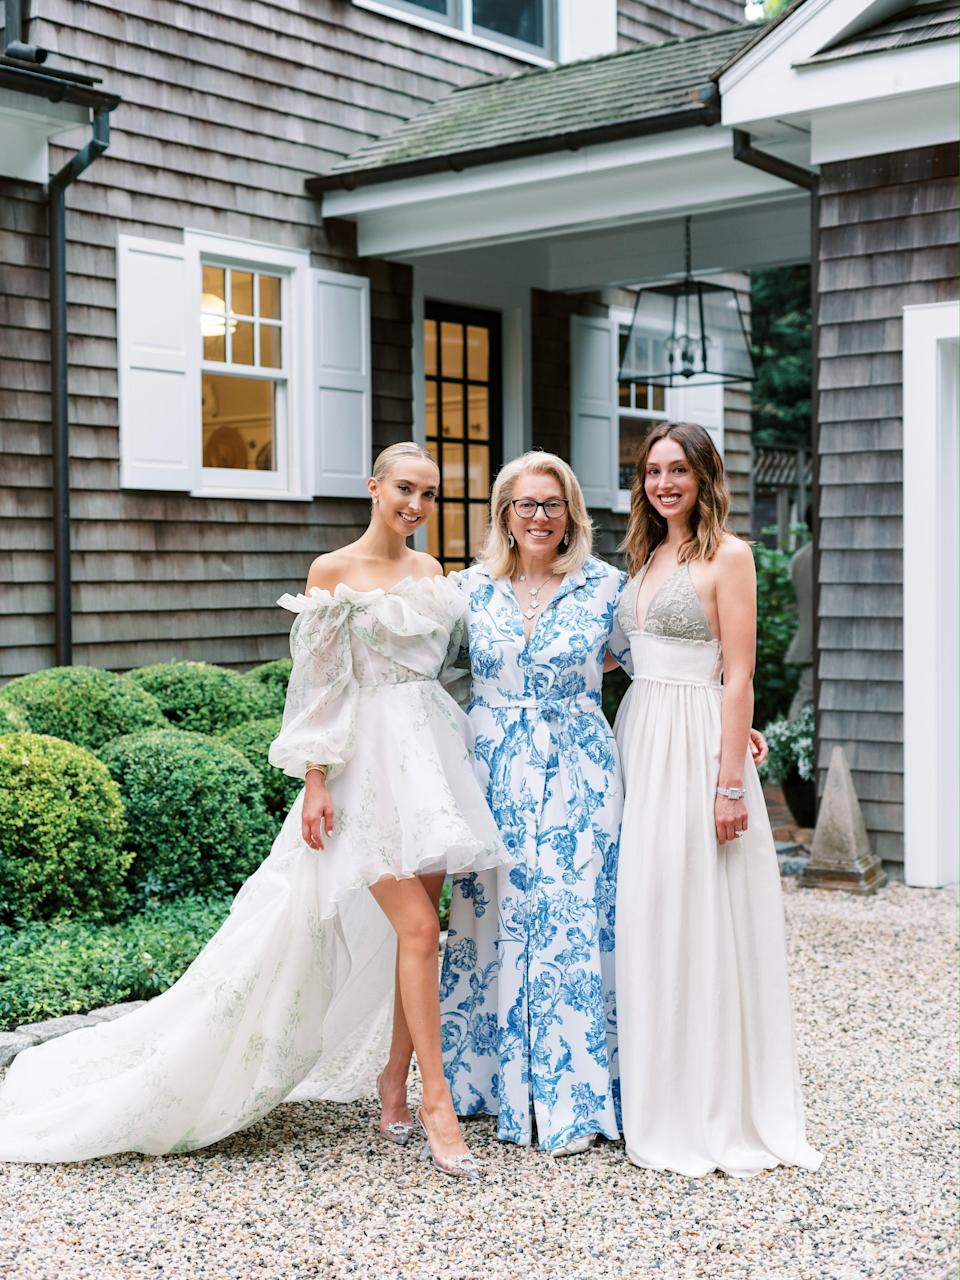 Me, my mom, Amy, and my sister, Hilary. My mom wore Oscar de la Renta and my sister wore Brunello Cucinelli. Both of their dresses were originally supposed to be worn to different weekend festivities in France, but they ended up being so perfect for this setting.